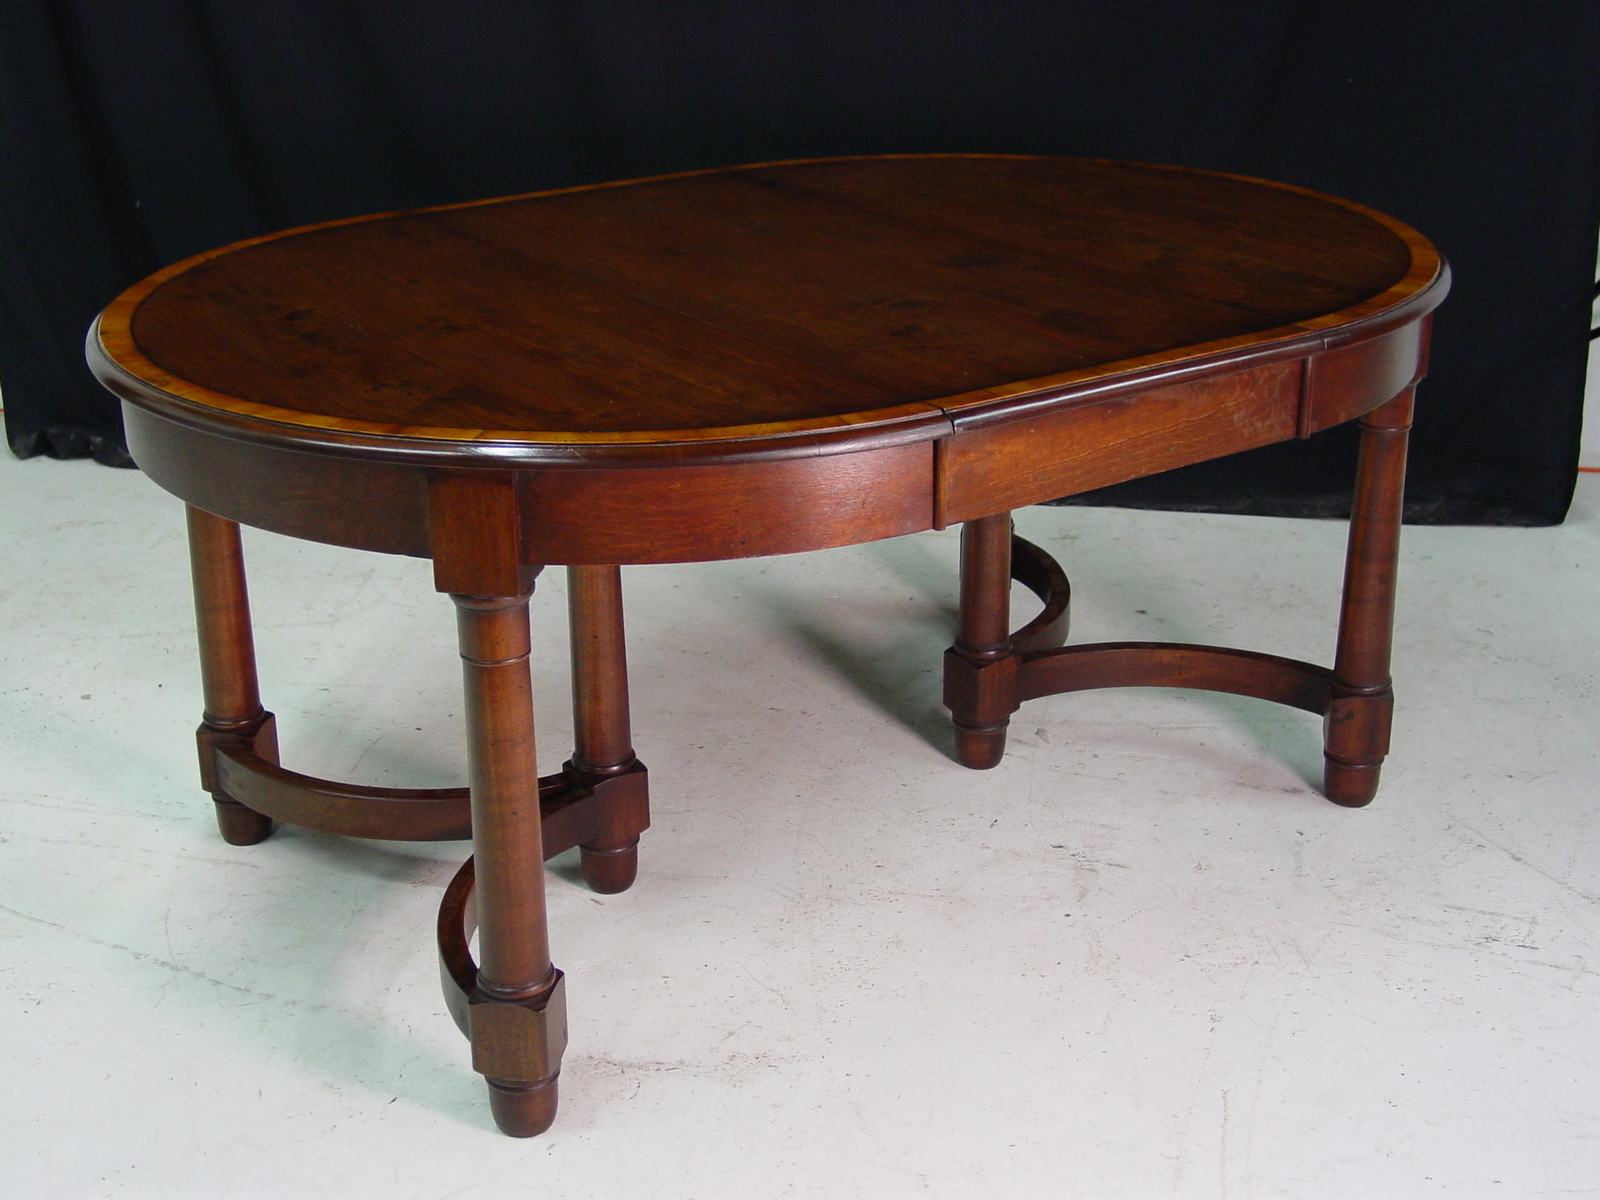 Custom round cherry table with leaf